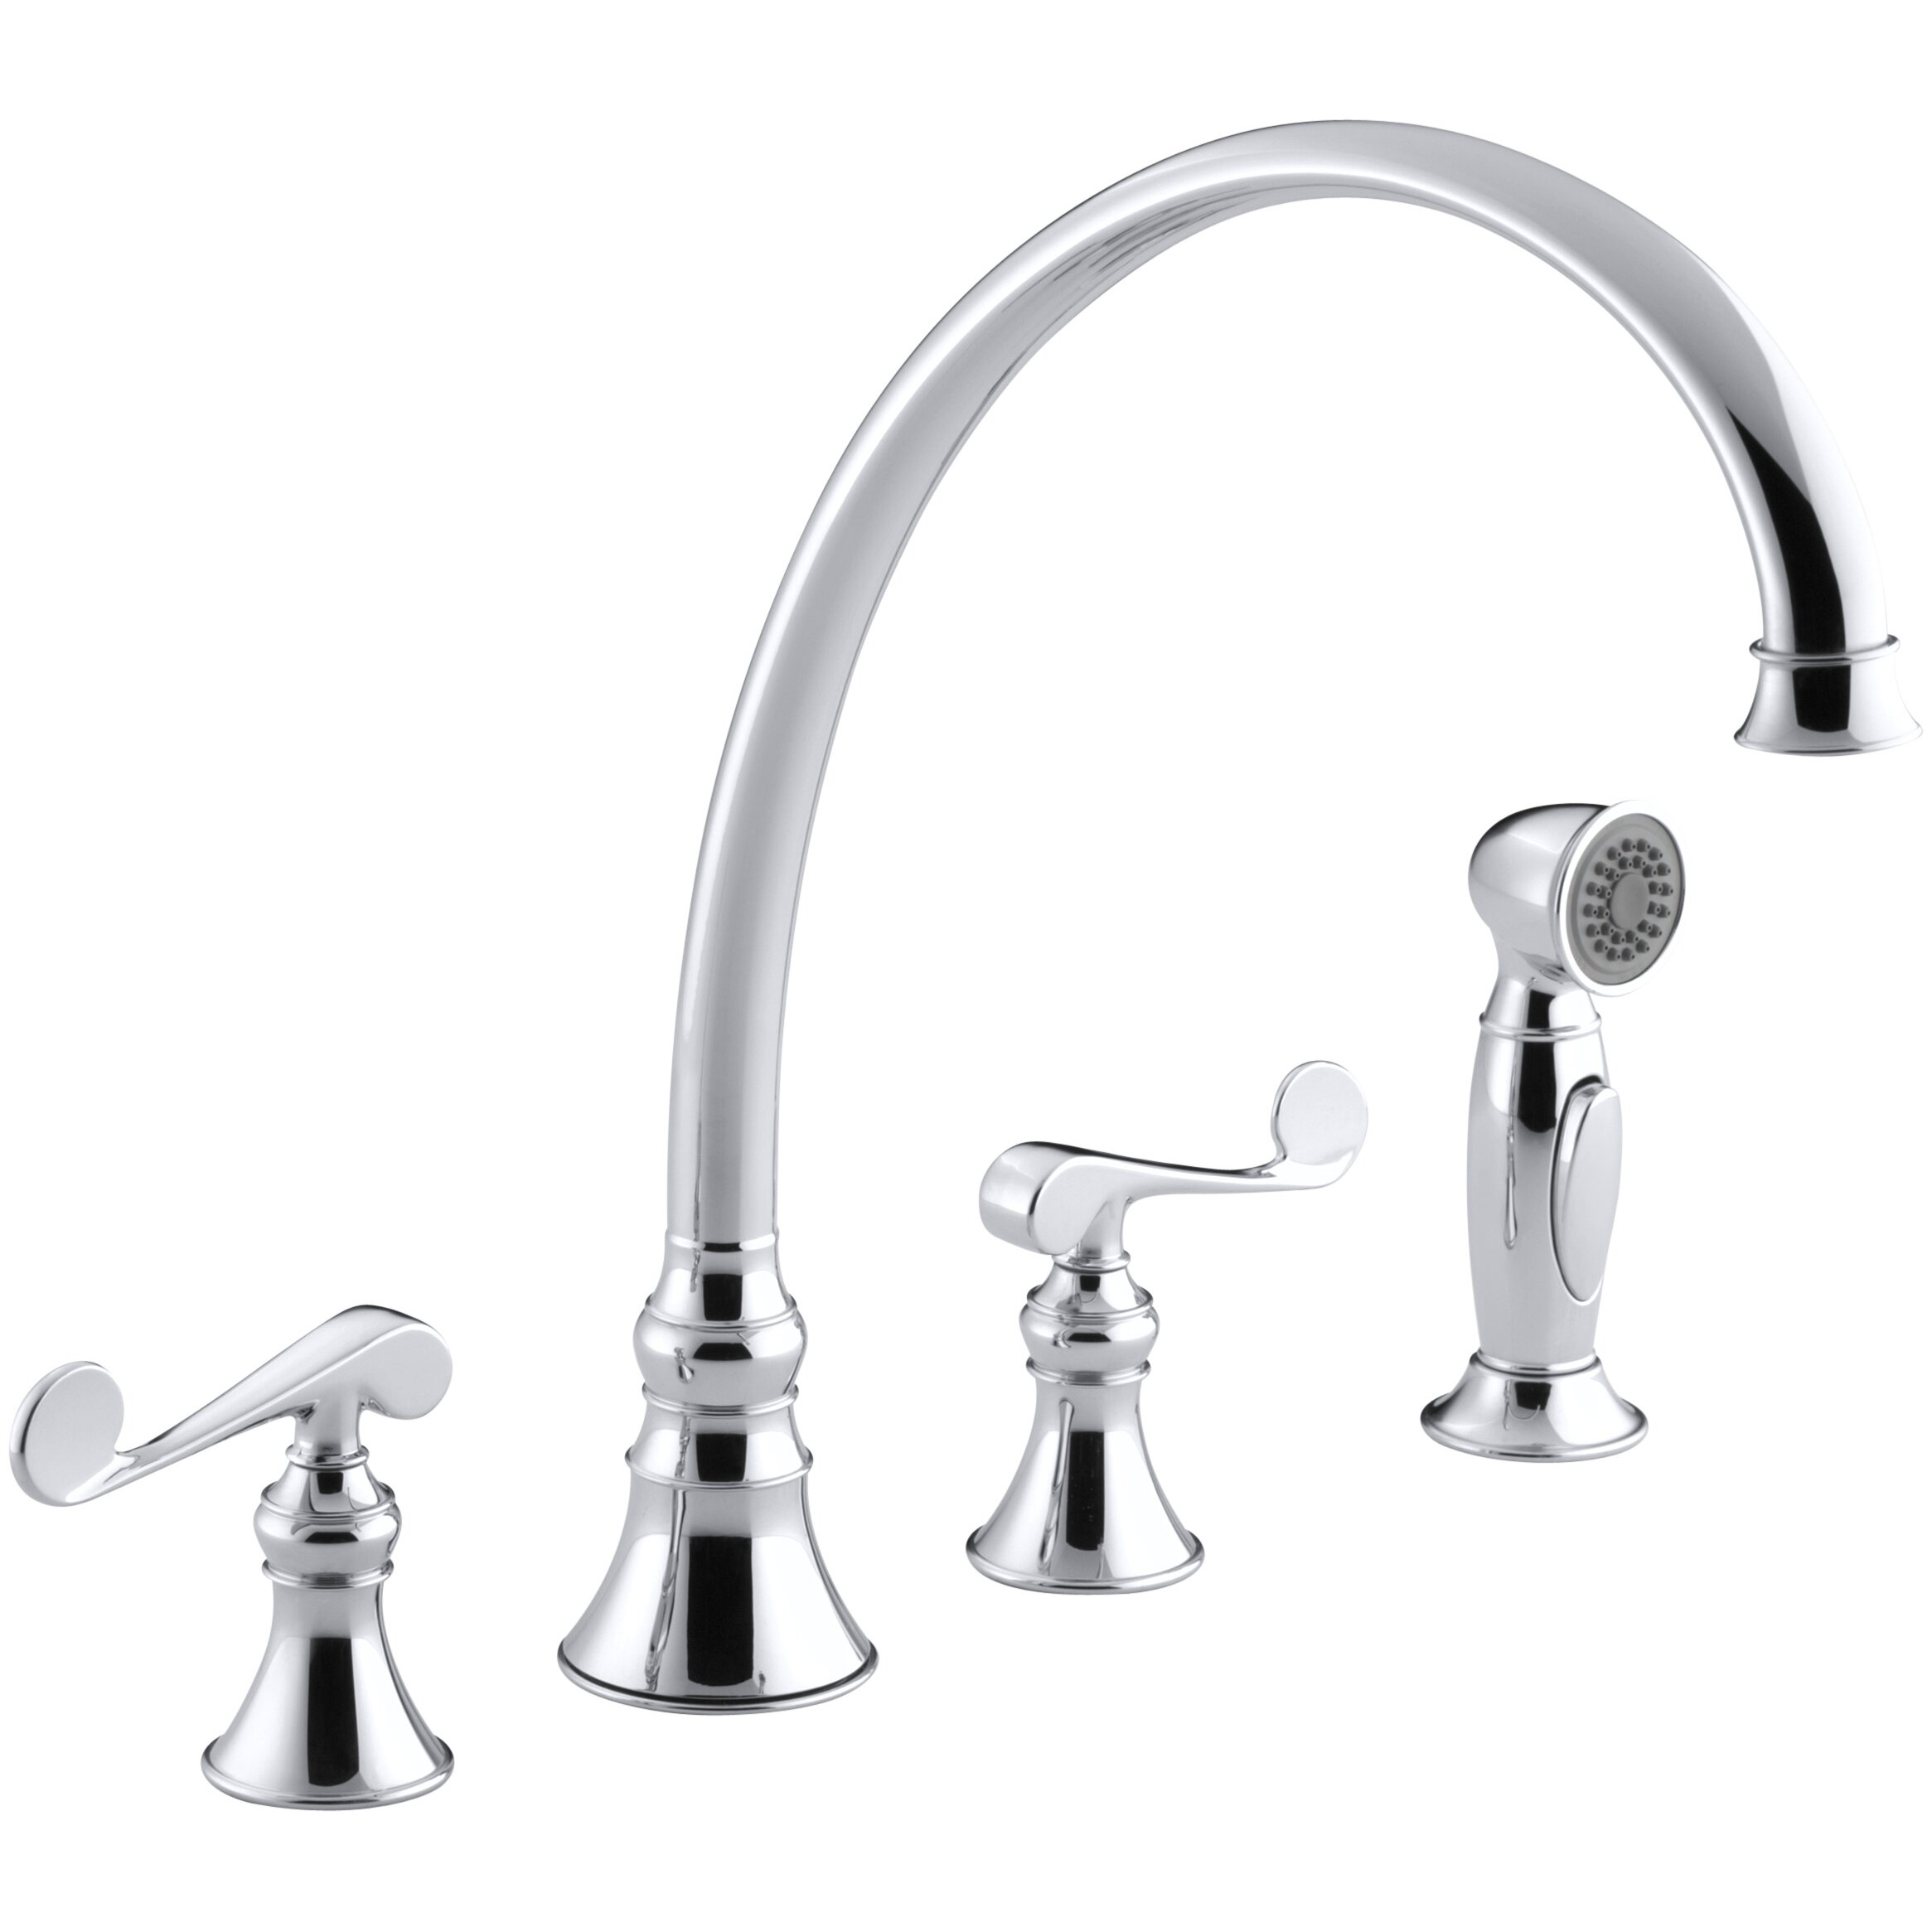 four hole kitchen faucet kohler revival 4 hole kitchen sink faucet with 11 13 16 quot spout matching finish sidespray and 858